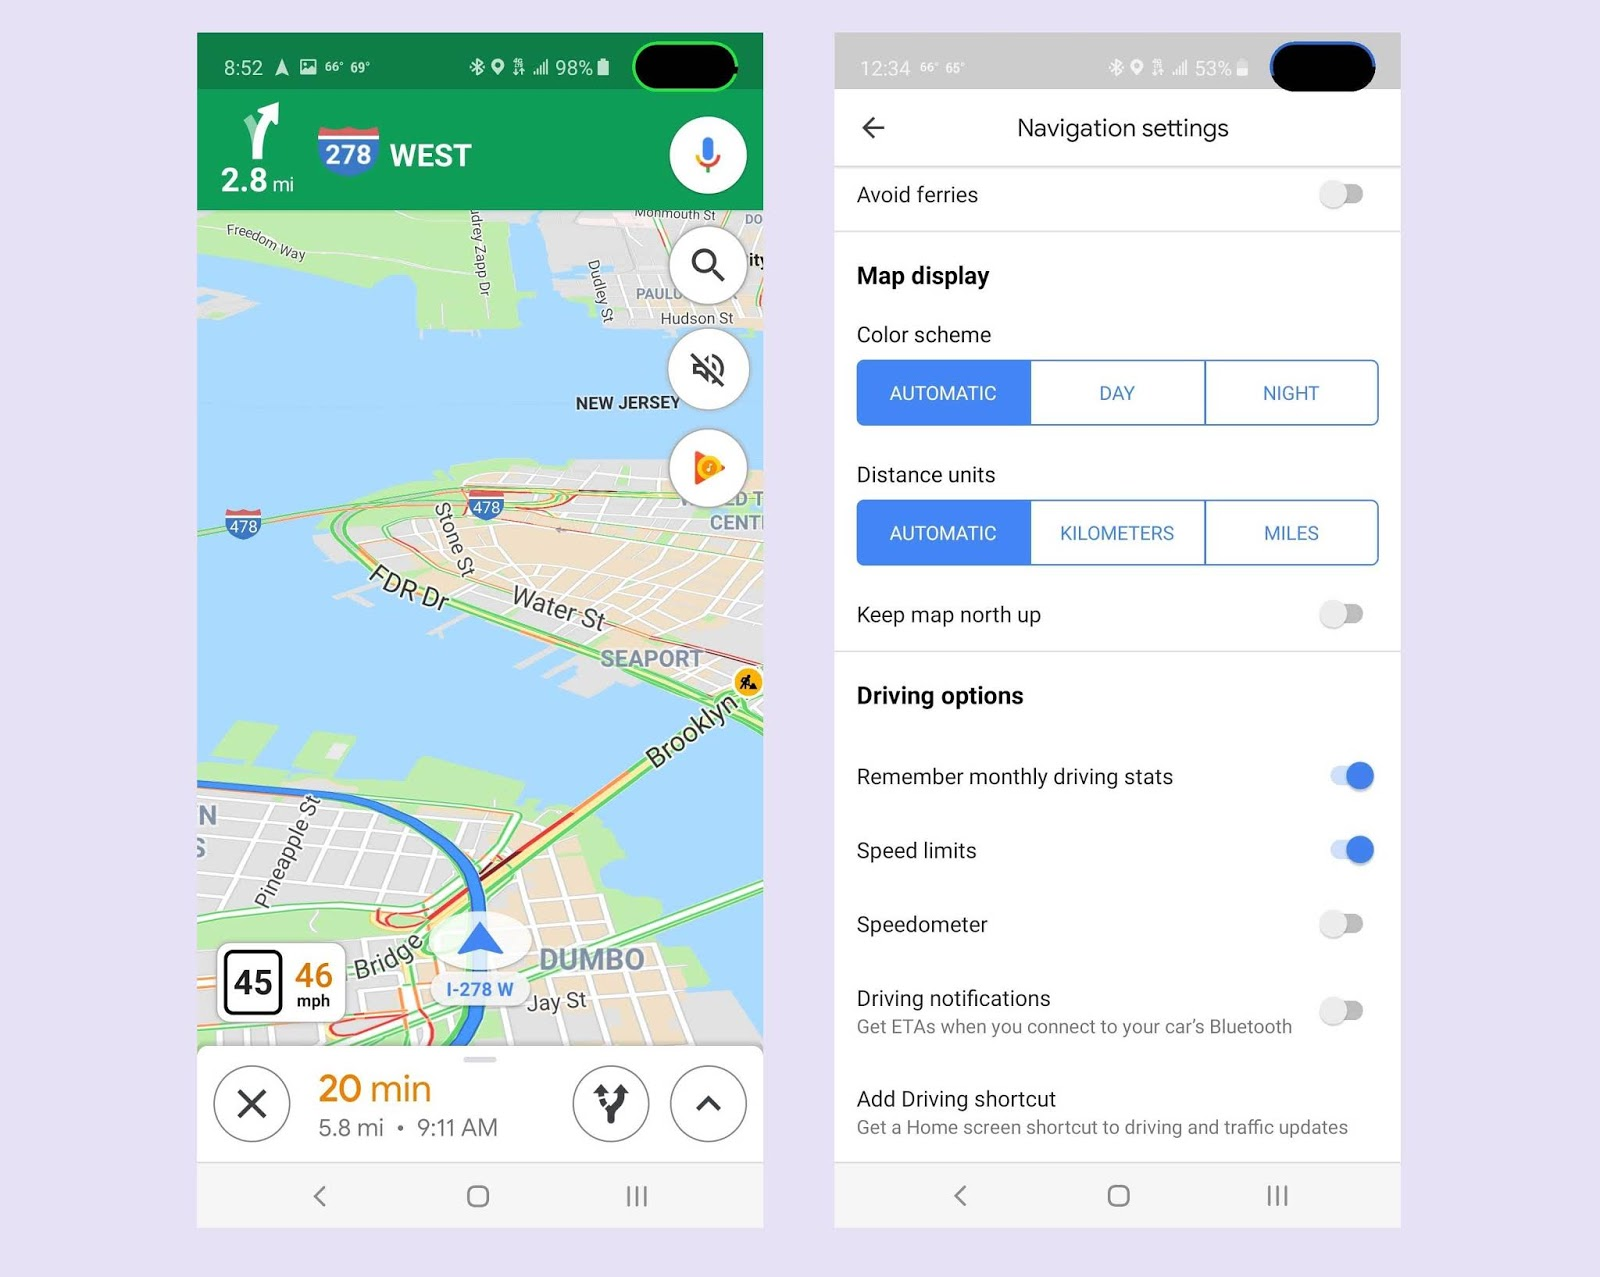 Google Maps now Introduces Sdometer to Keep Check on ... on aerial maps, search maps, google search, goolge maps, satellite map images with missing or unclear data, ipad maps, amazon fire phone maps, google sky, google moon, road map usa states maps, google mars, googlr maps, msn maps, google voice, google docs, gppgle maps, web mapping, google map maker, googie maps, aeronautical maps, gogole maps, iphone maps, google translate, microsoft maps, google goggles, bing maps, online maps, google chrome, yahoo! maps, stanford university maps, route planning software, topographic maps, waze maps, android maps,